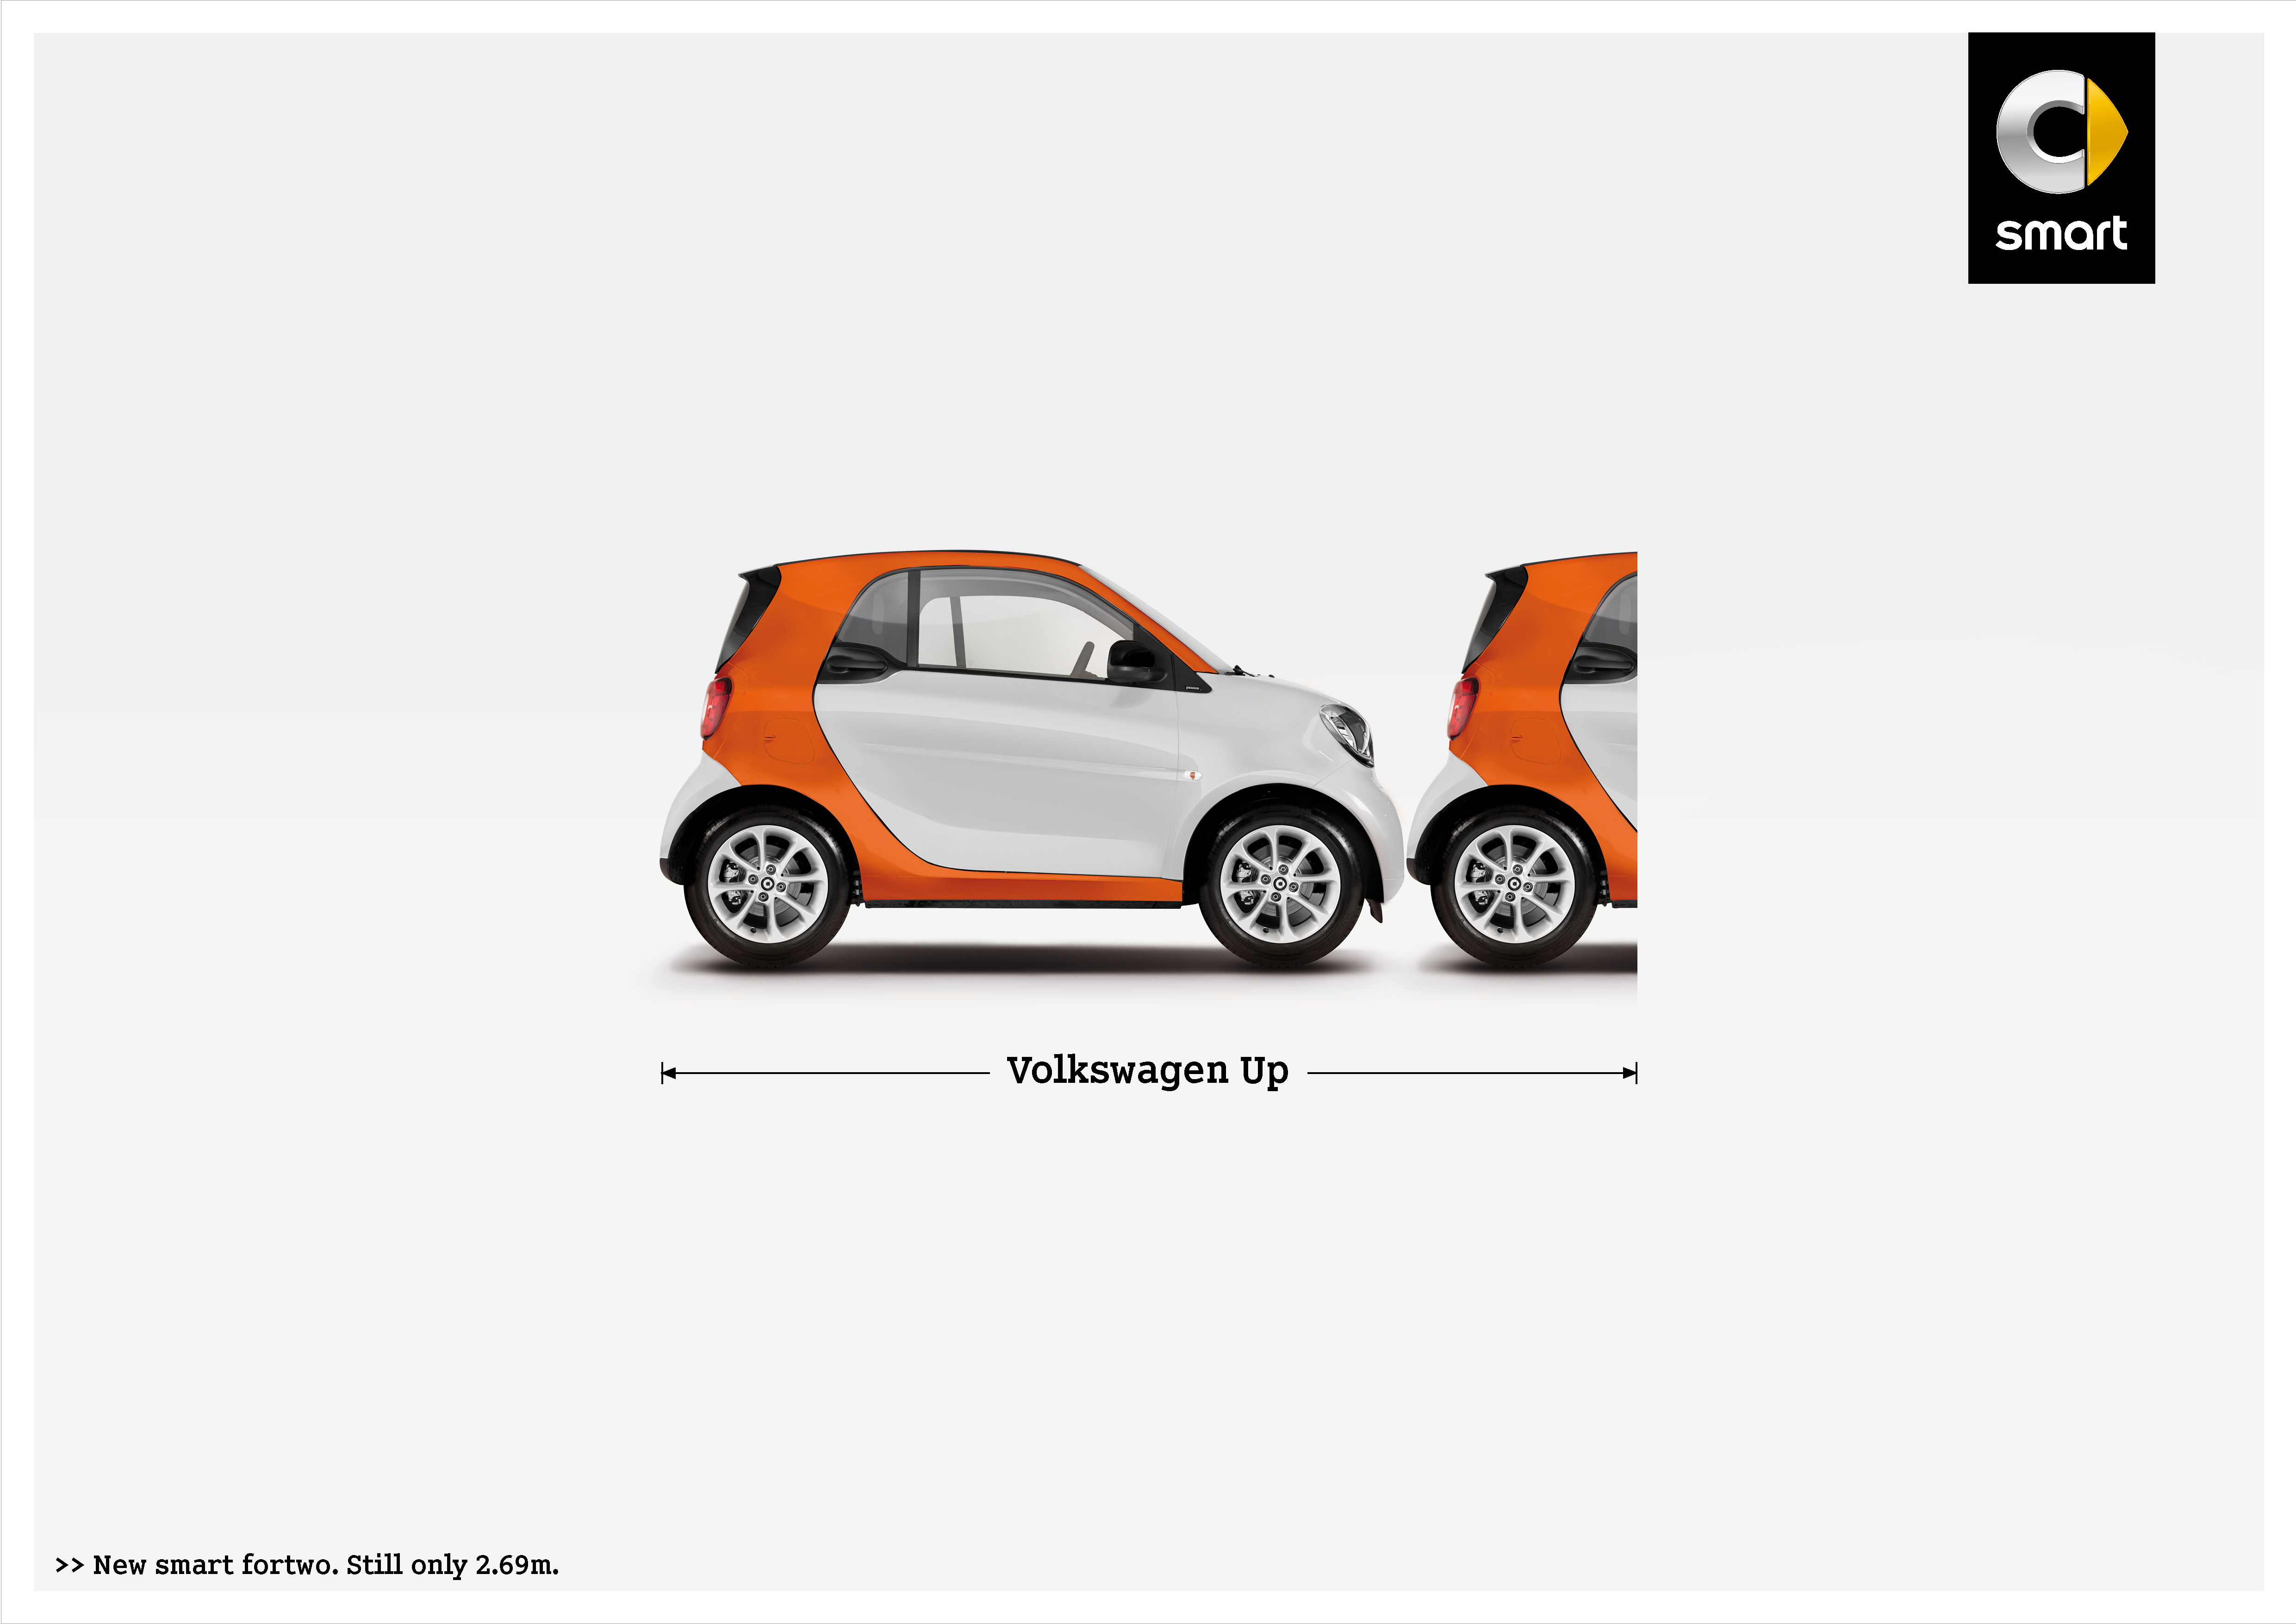 Smart Print Advert By BBDO: Volkswagen   Ads of the World™